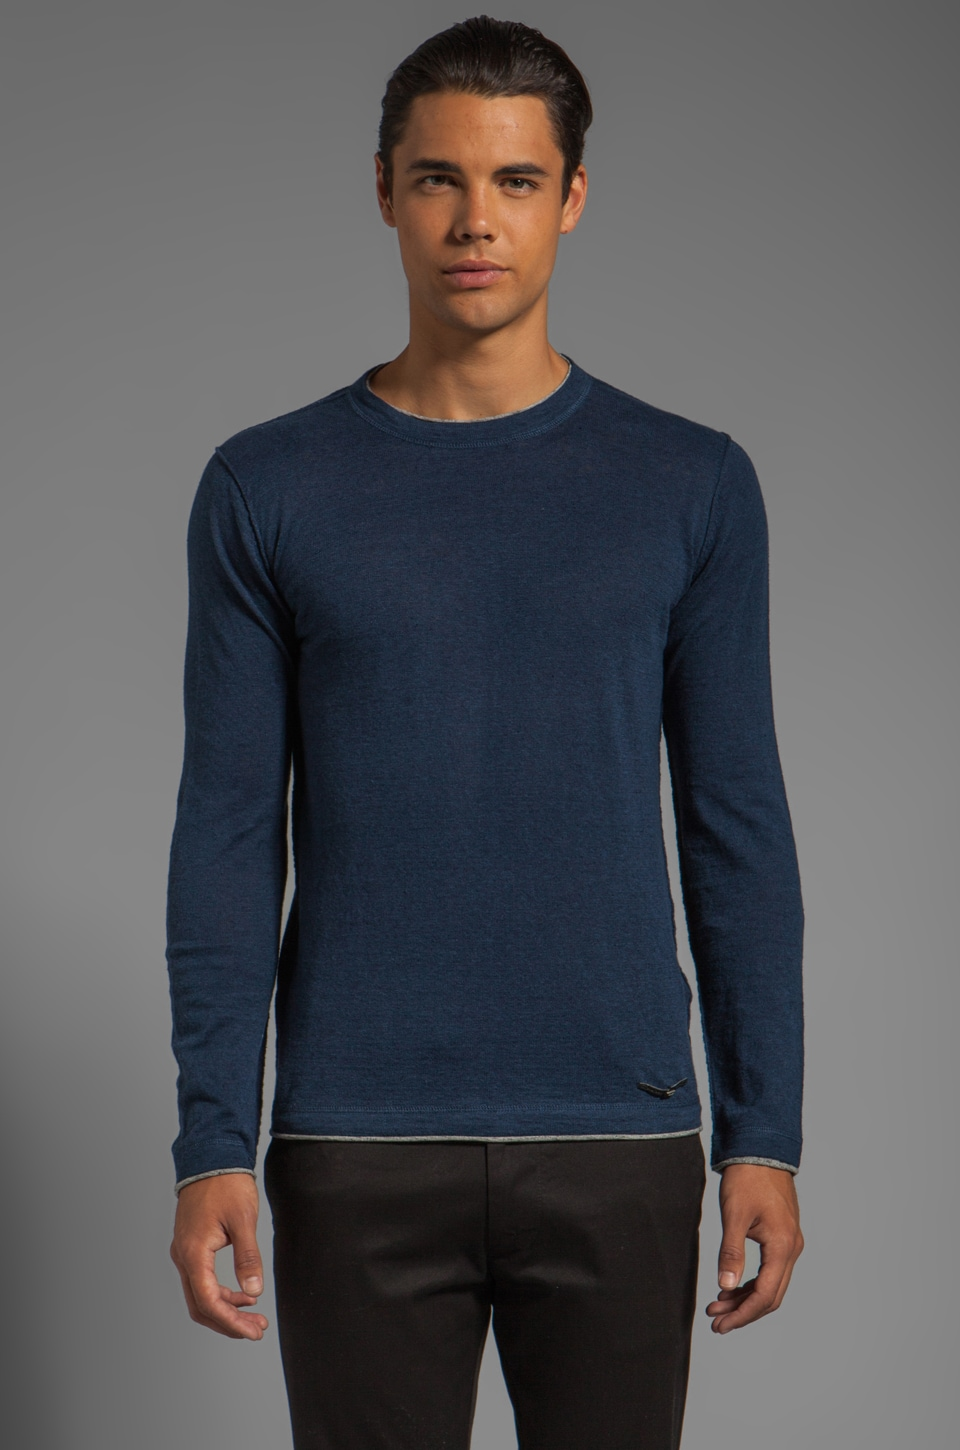 Diesel Ascepio Sweater in Midnight